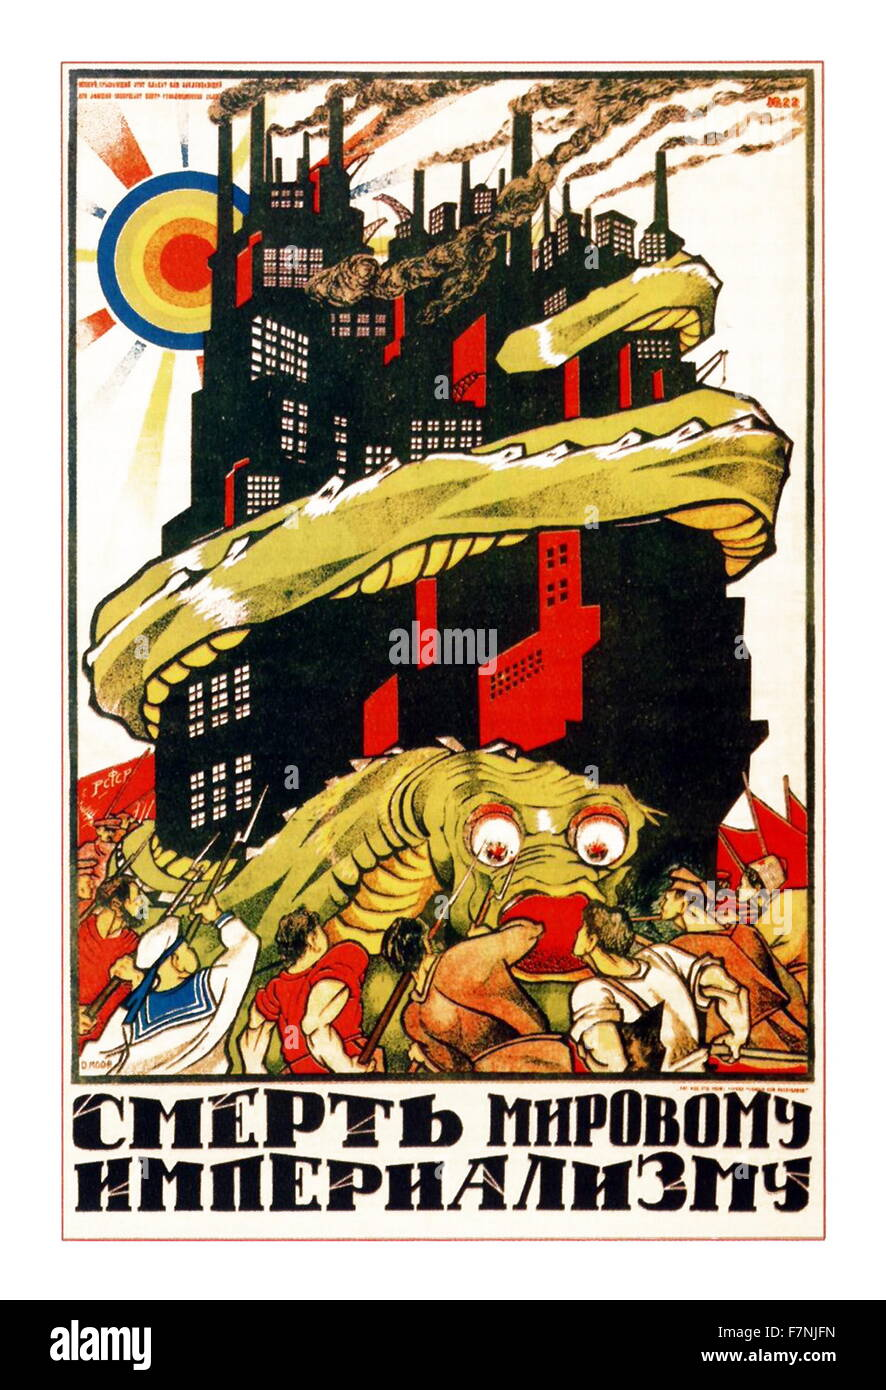 soviet Russian propaganda poster depicting 'Death to world imperialism!' 1921 - Stock Image